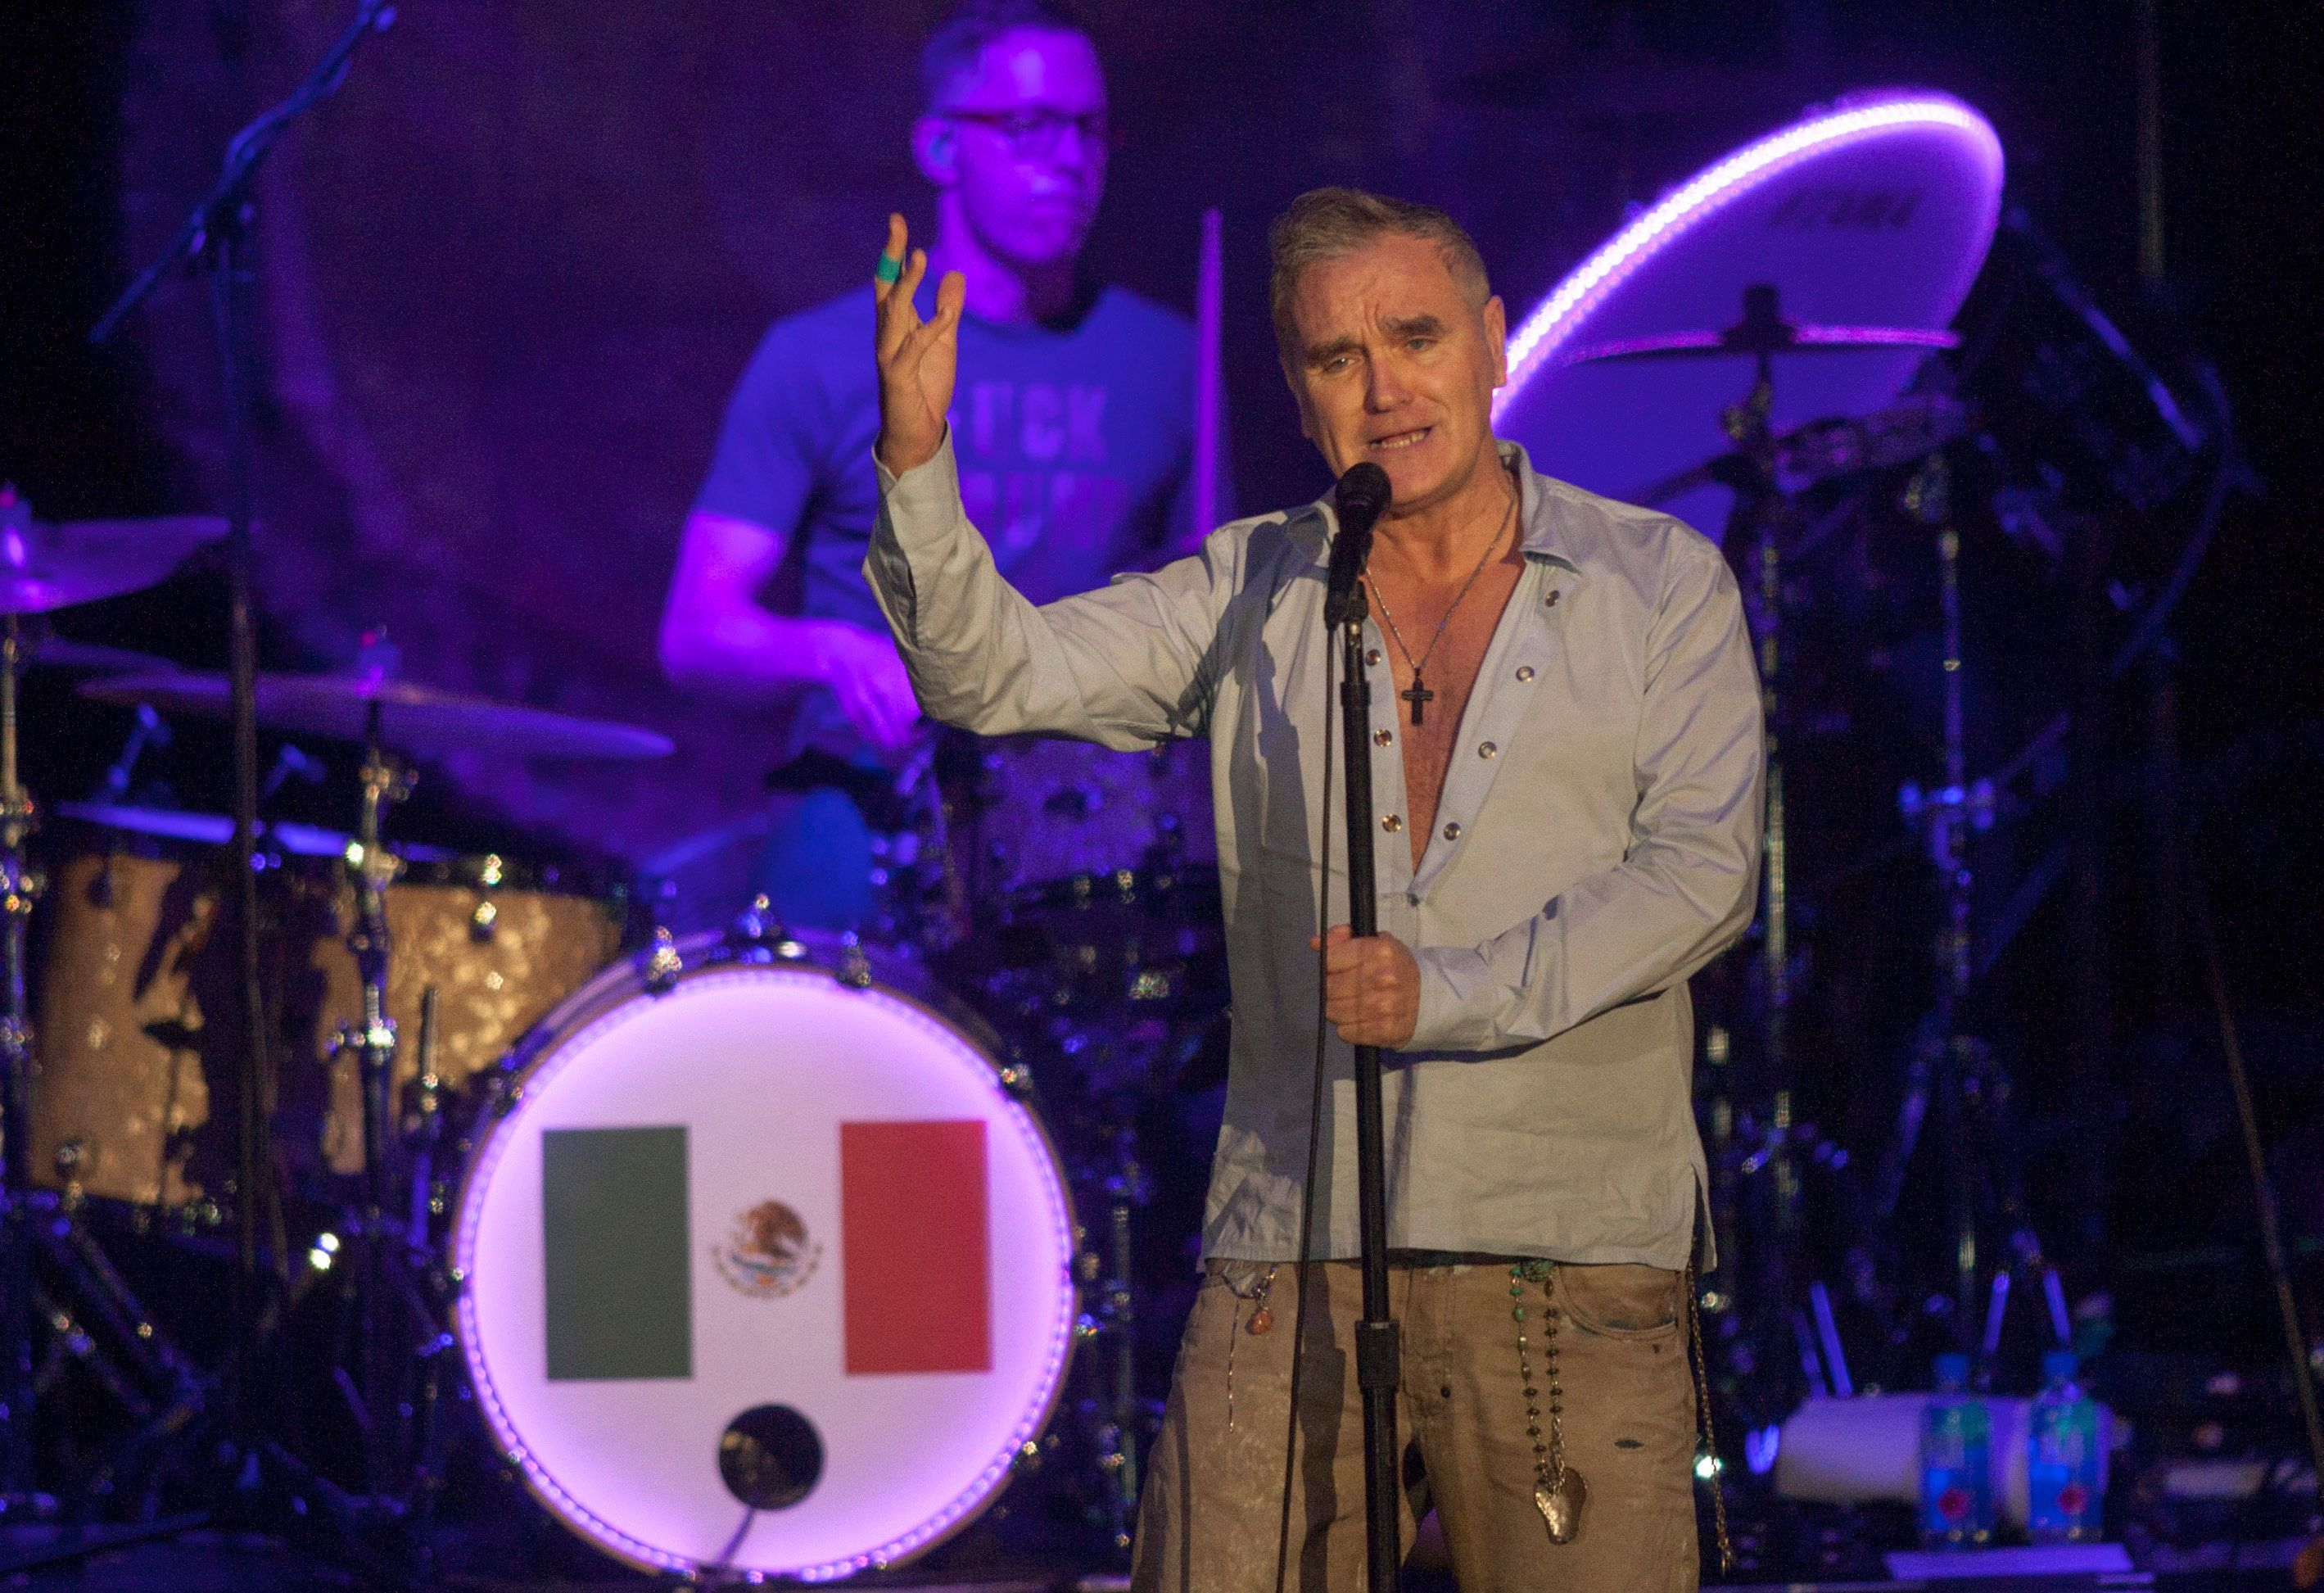 Morrissey Claims He Was Misquoted In Controversial Comments About Kevin Spacey